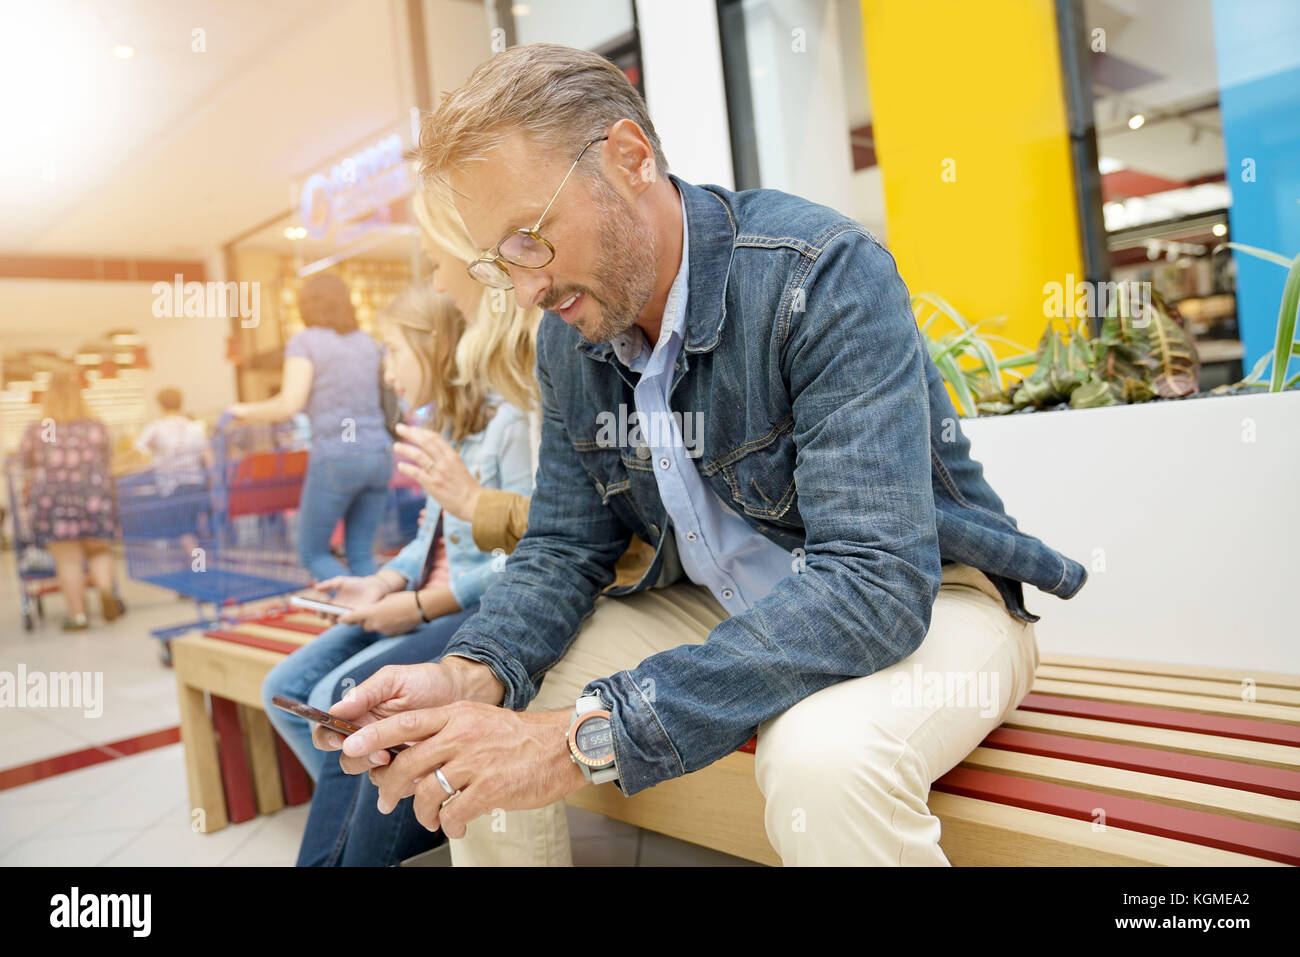 Man sitting on public bench in shopping mall - Stock Image